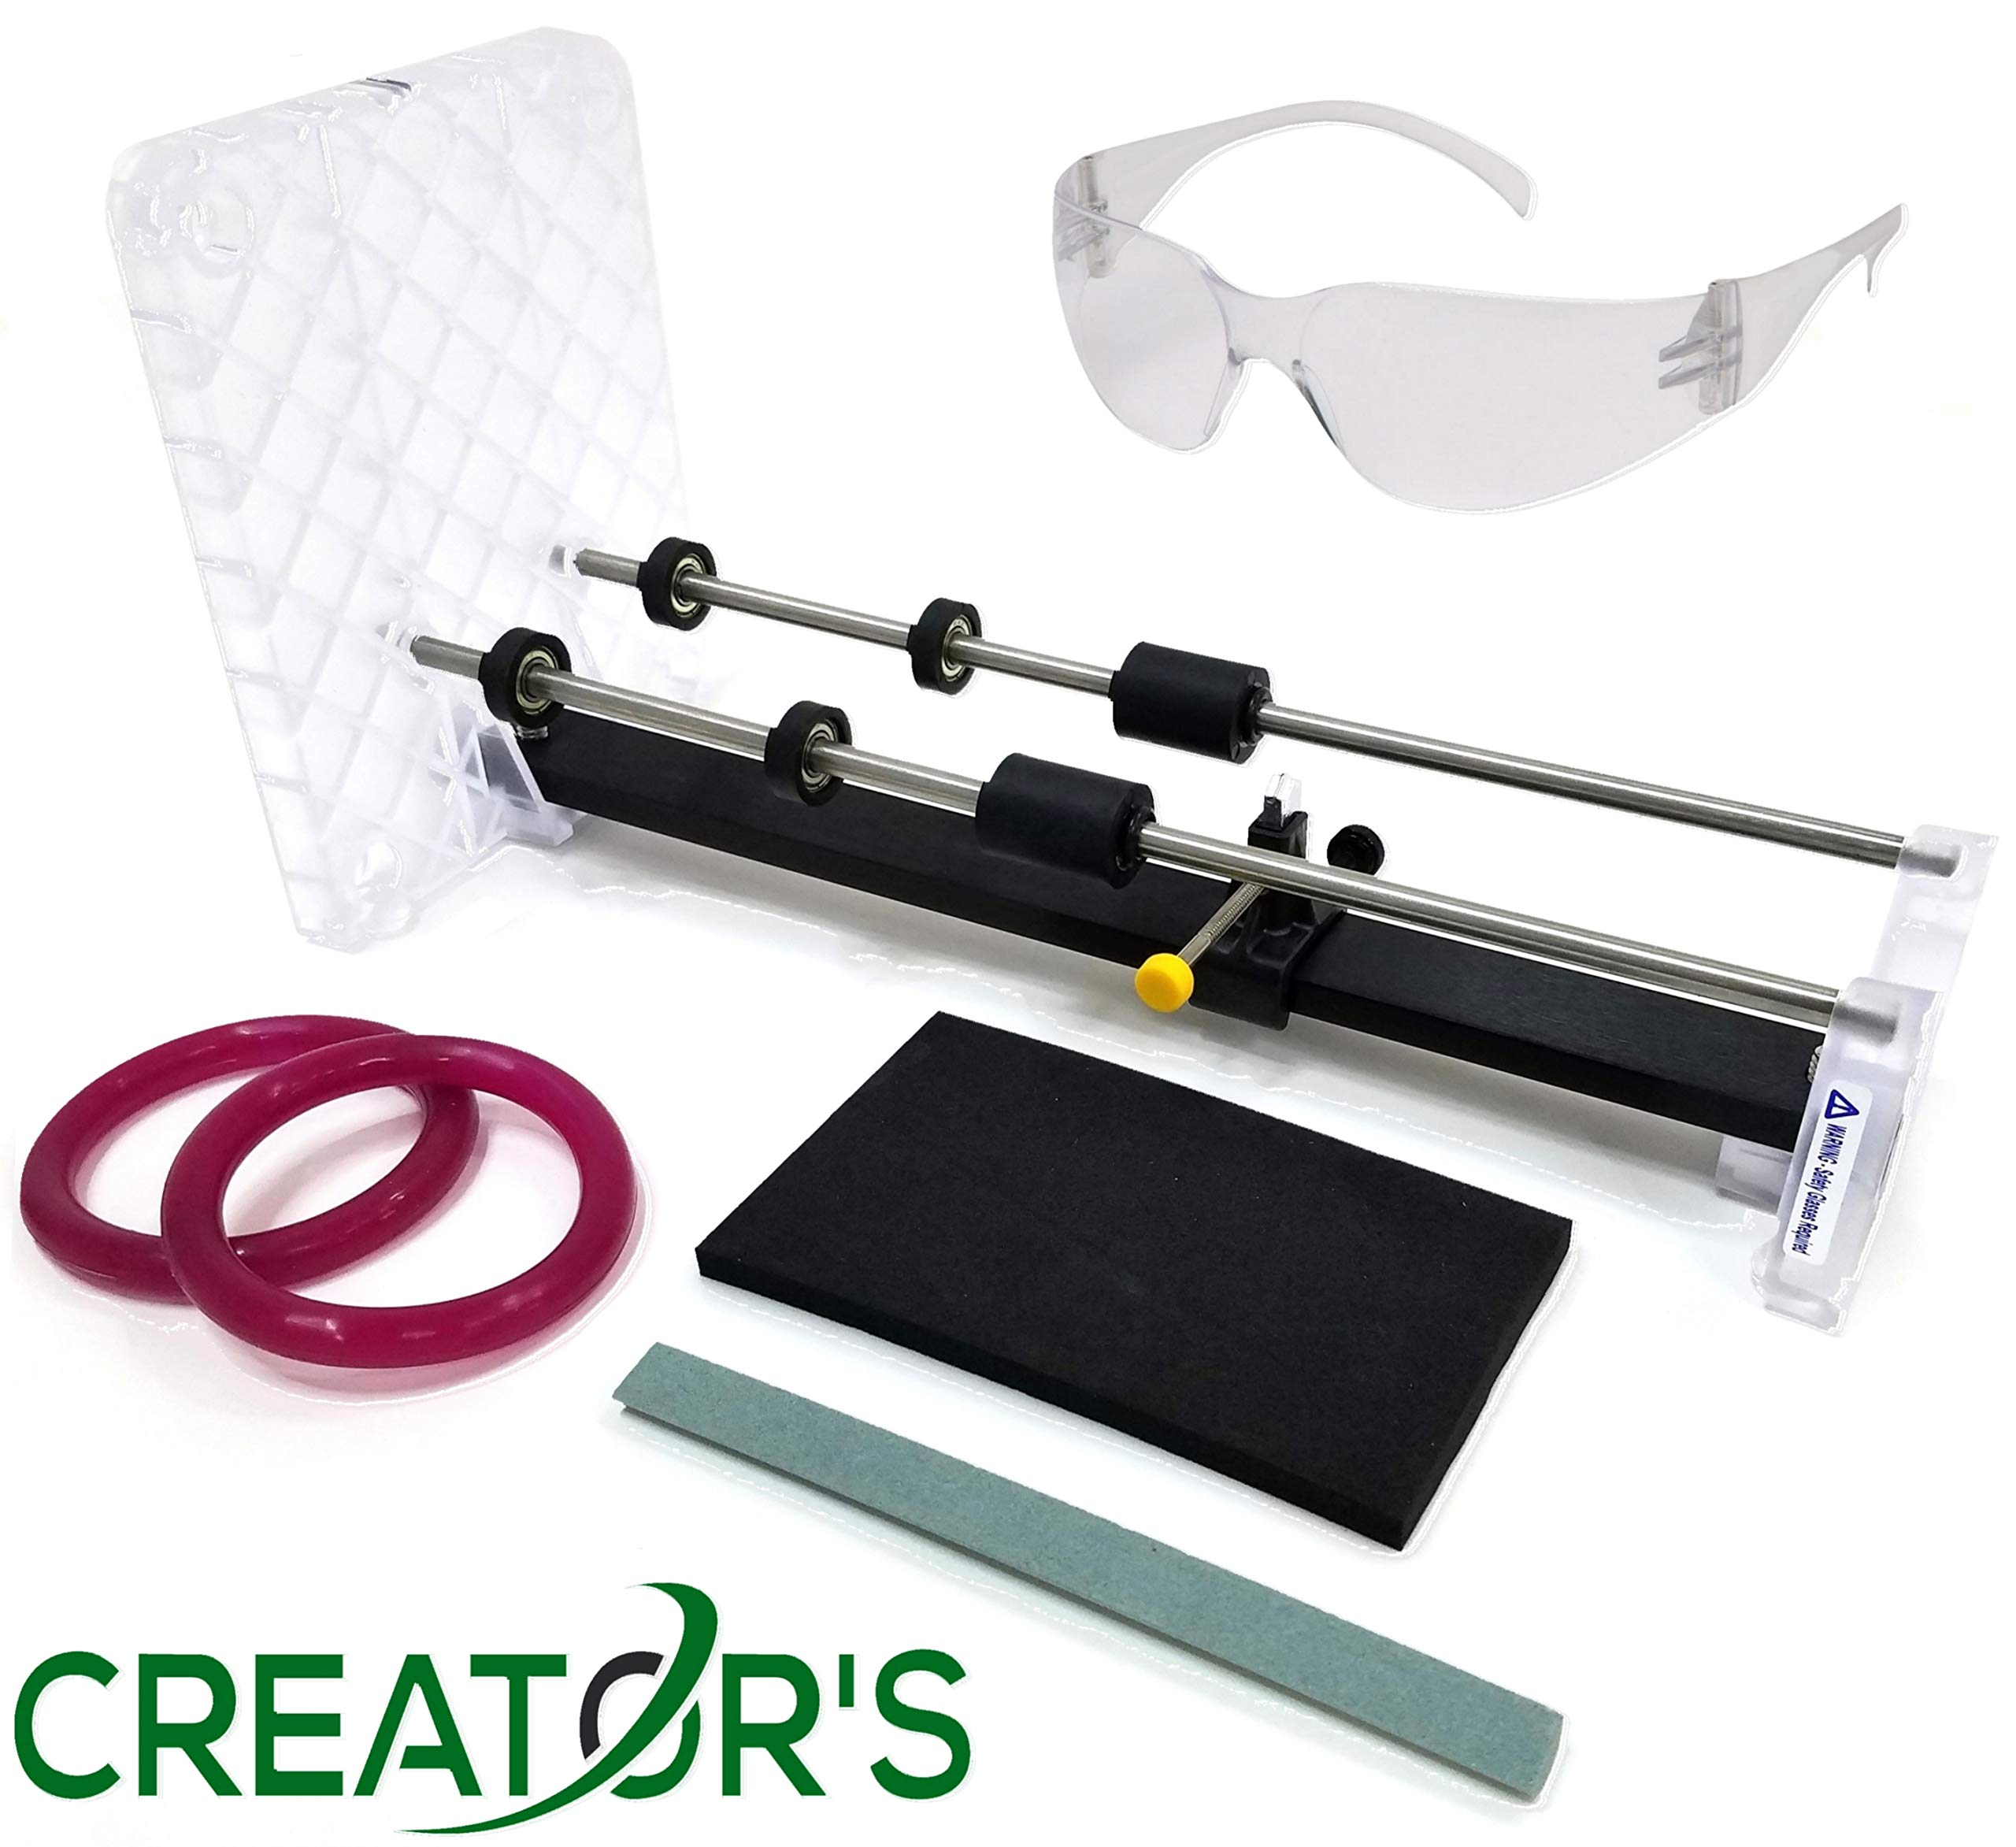 Creator's Bottle Cutter - Professional Series - DIY - Trusted, Reliable, Loved - Cuts Glass Wine/Beer/Liquor Bottles - Consumer's Choice Rated Number One Best in The World - Precision Made in The USA by Creator's